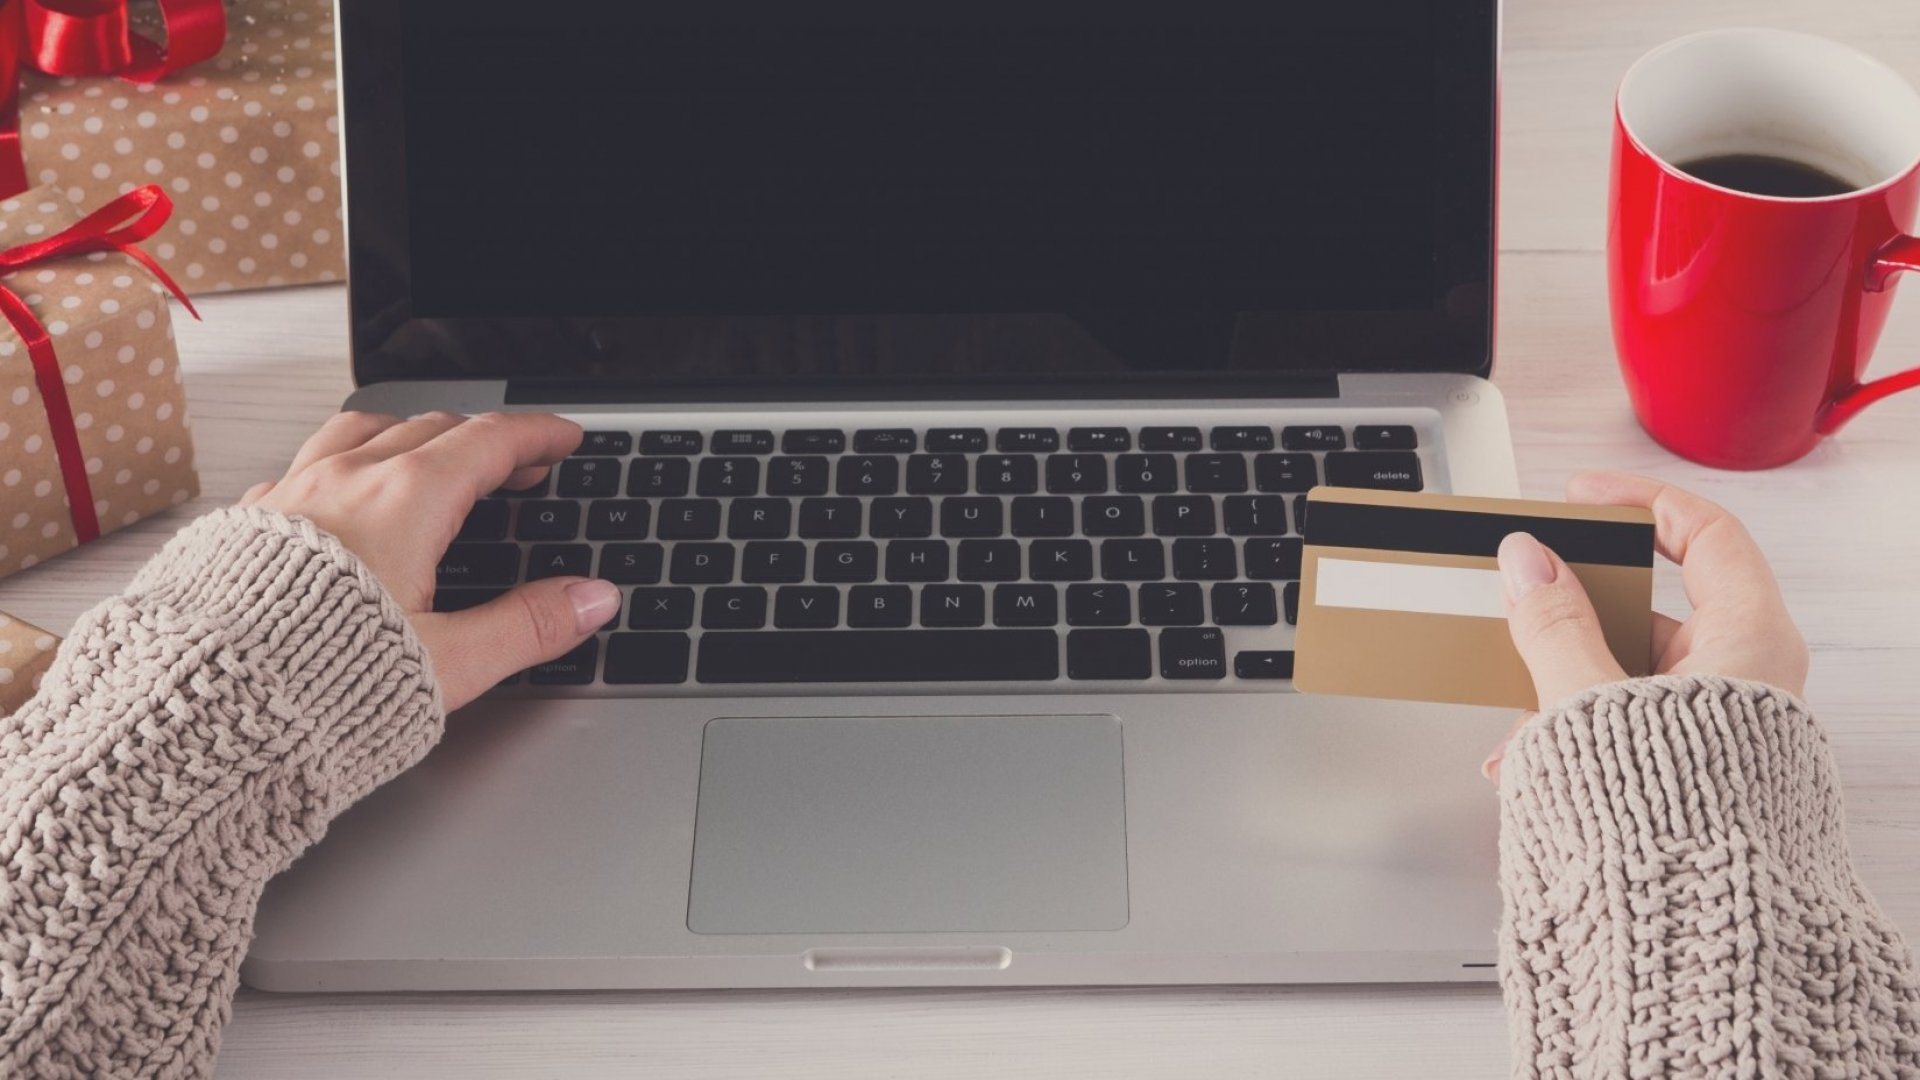 The holiday shopping season can extend far beyond Black Friday with help from ongoing email campaigns.